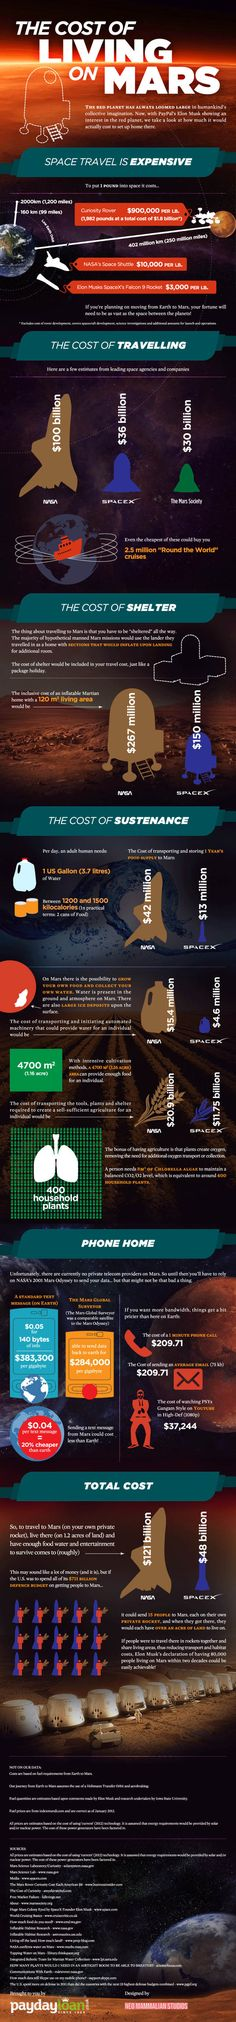 The Cost of Living on Mars [Infographic]